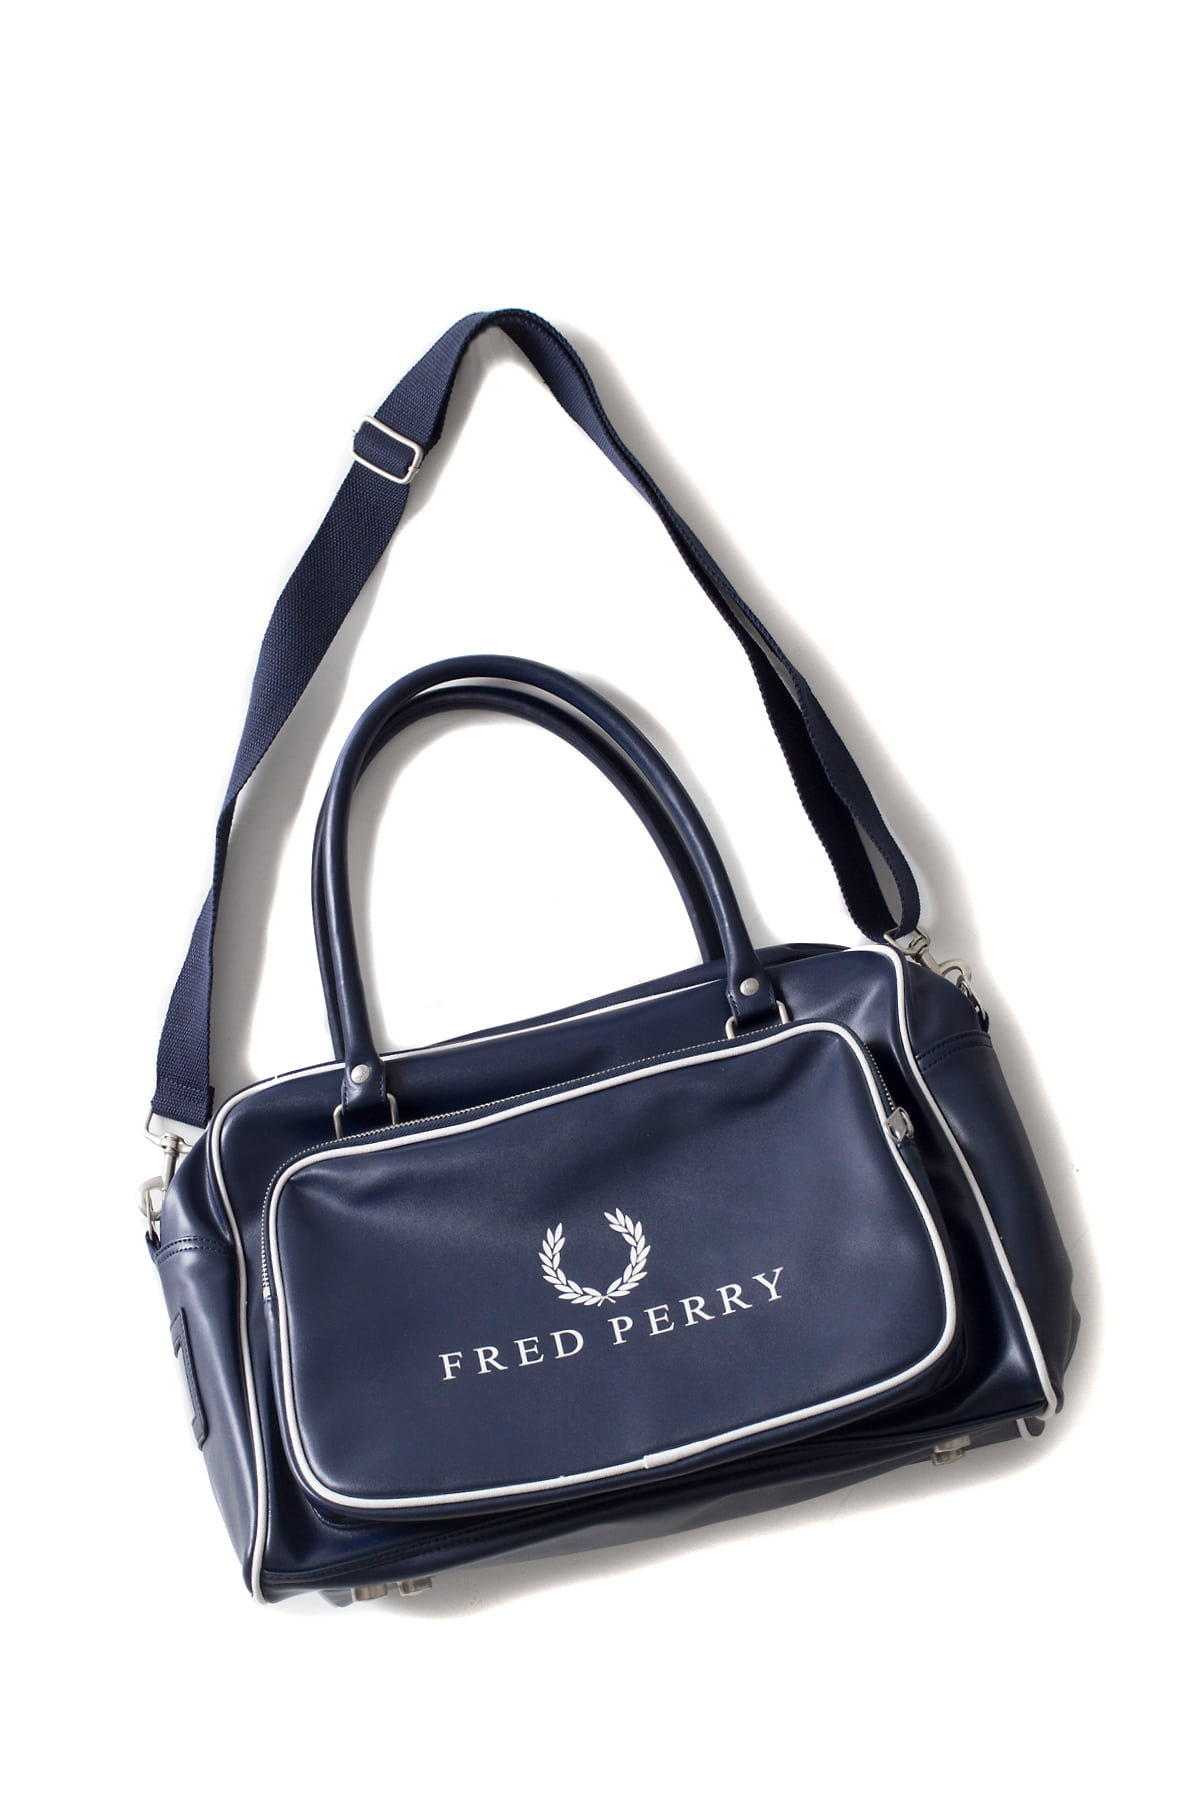 FRED PERRY : Tennis Holdall (Navy)